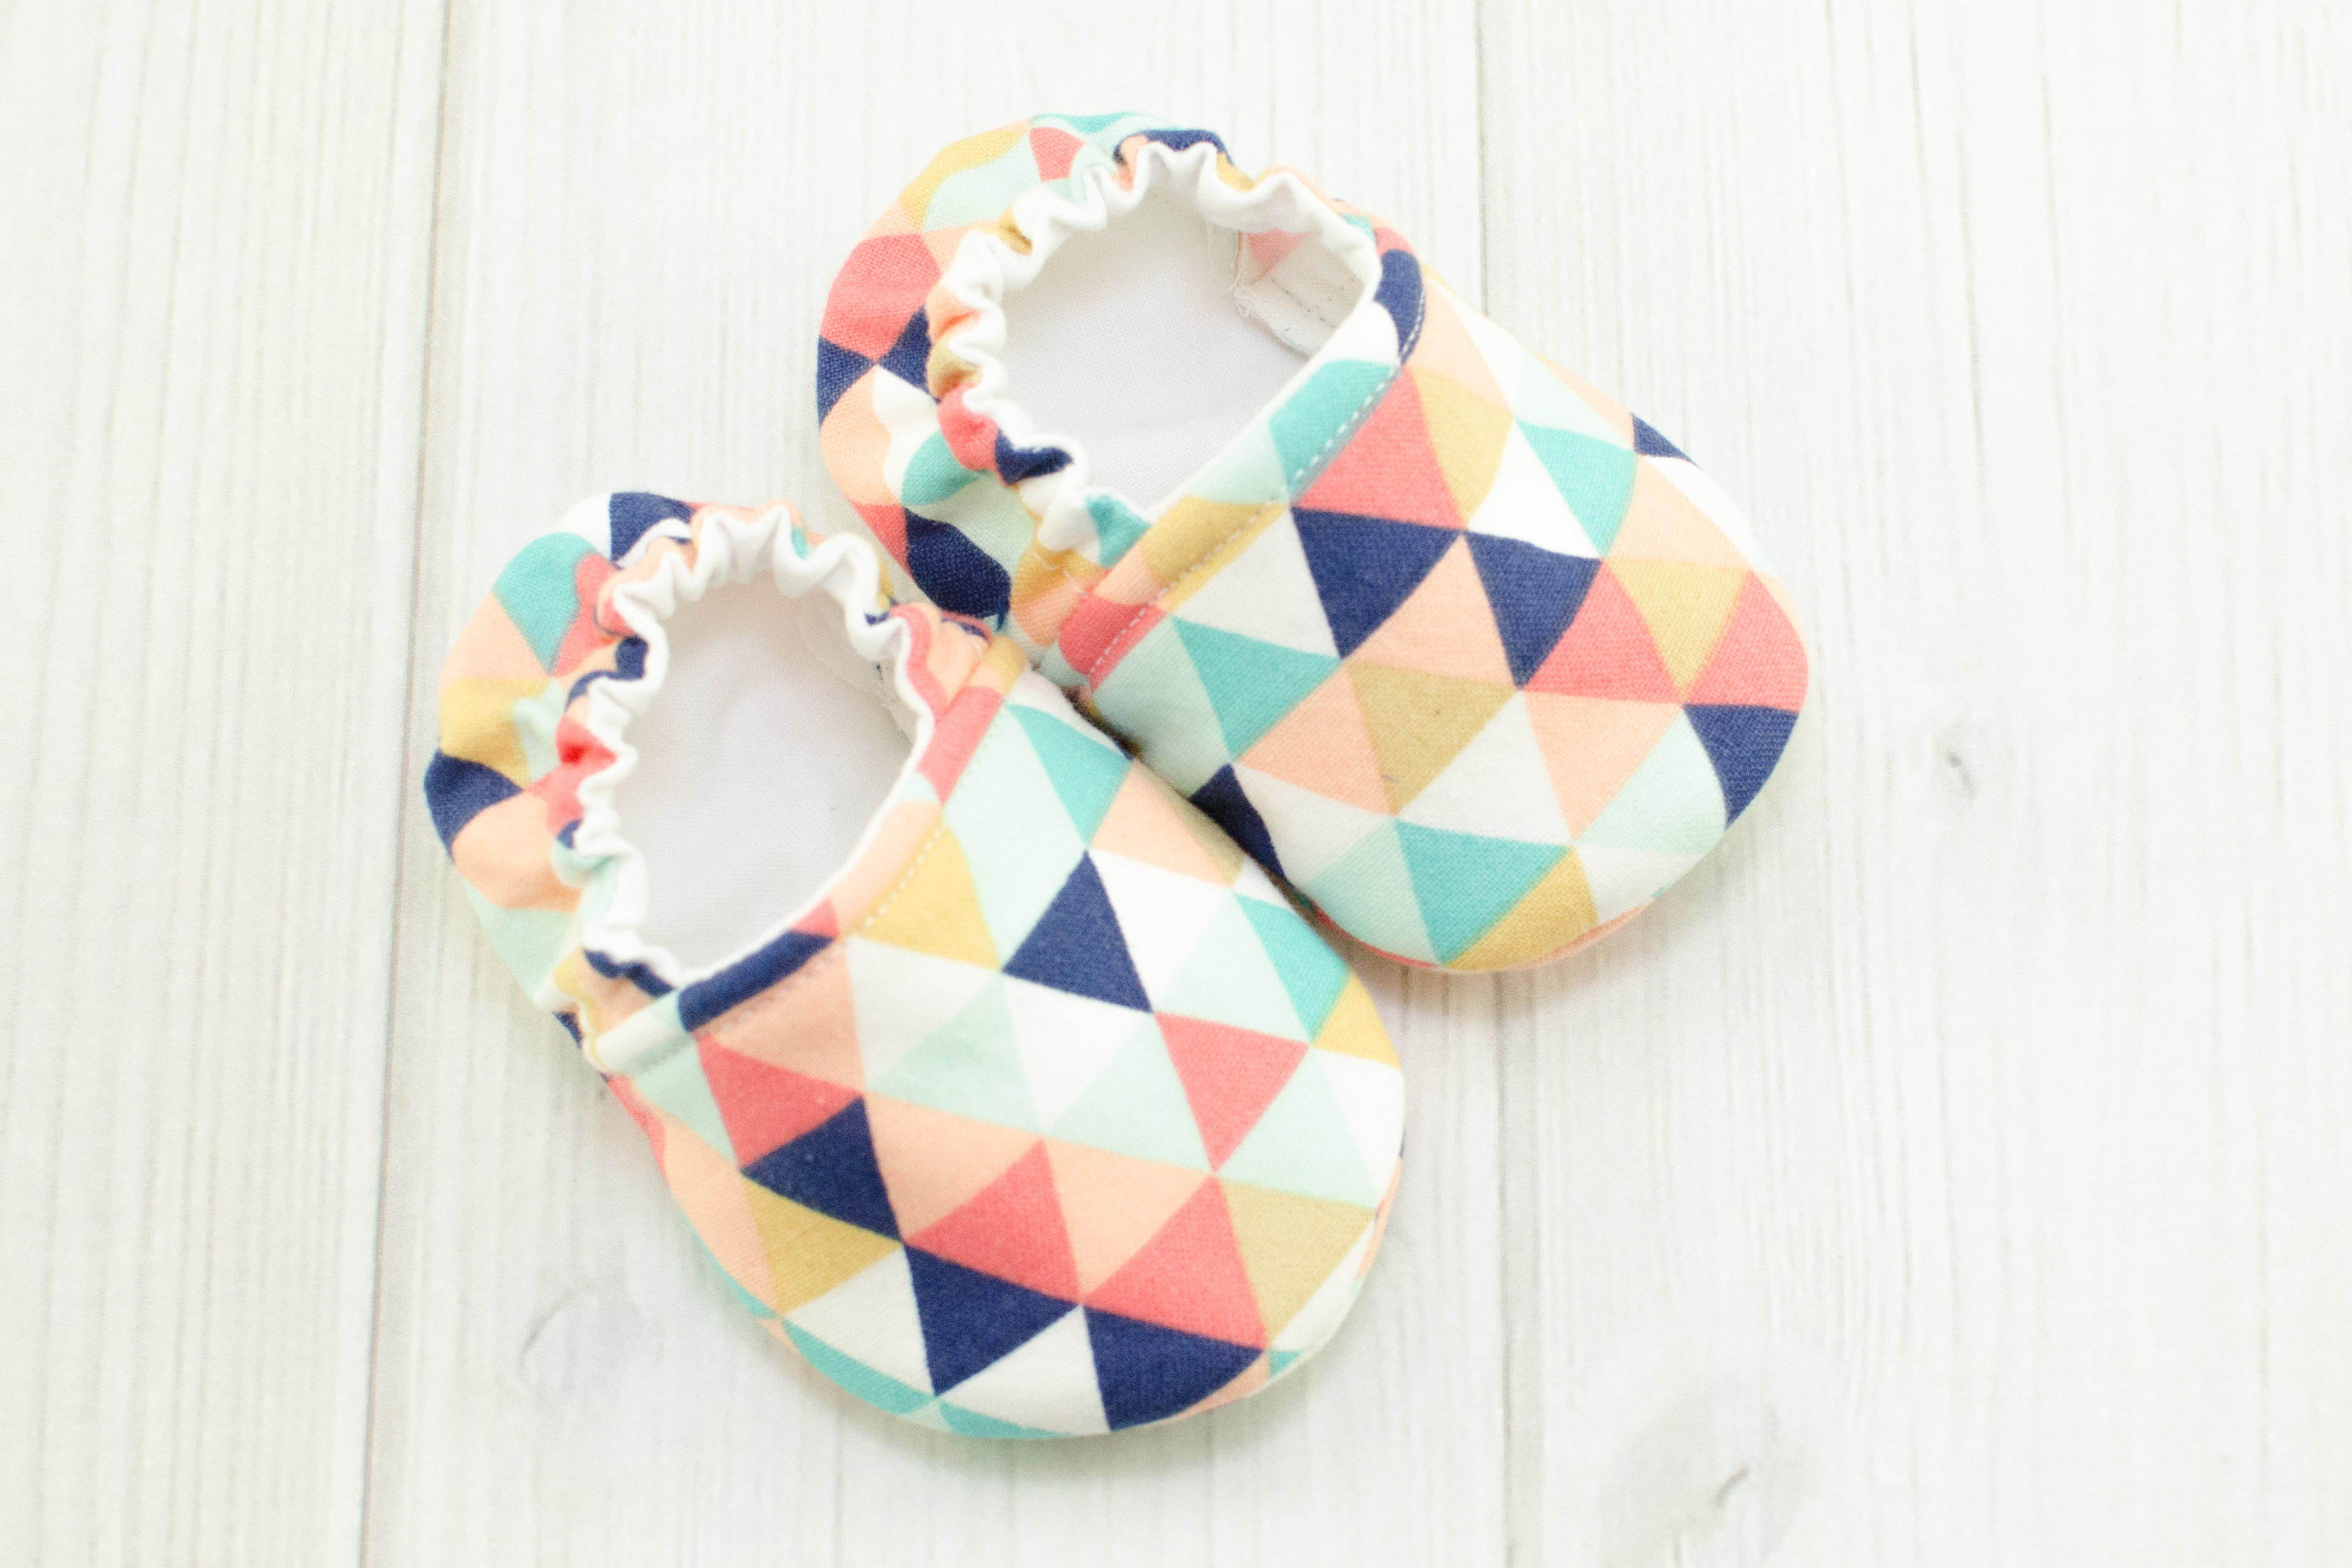 Cloth Flexible Sole Shoes For Babies